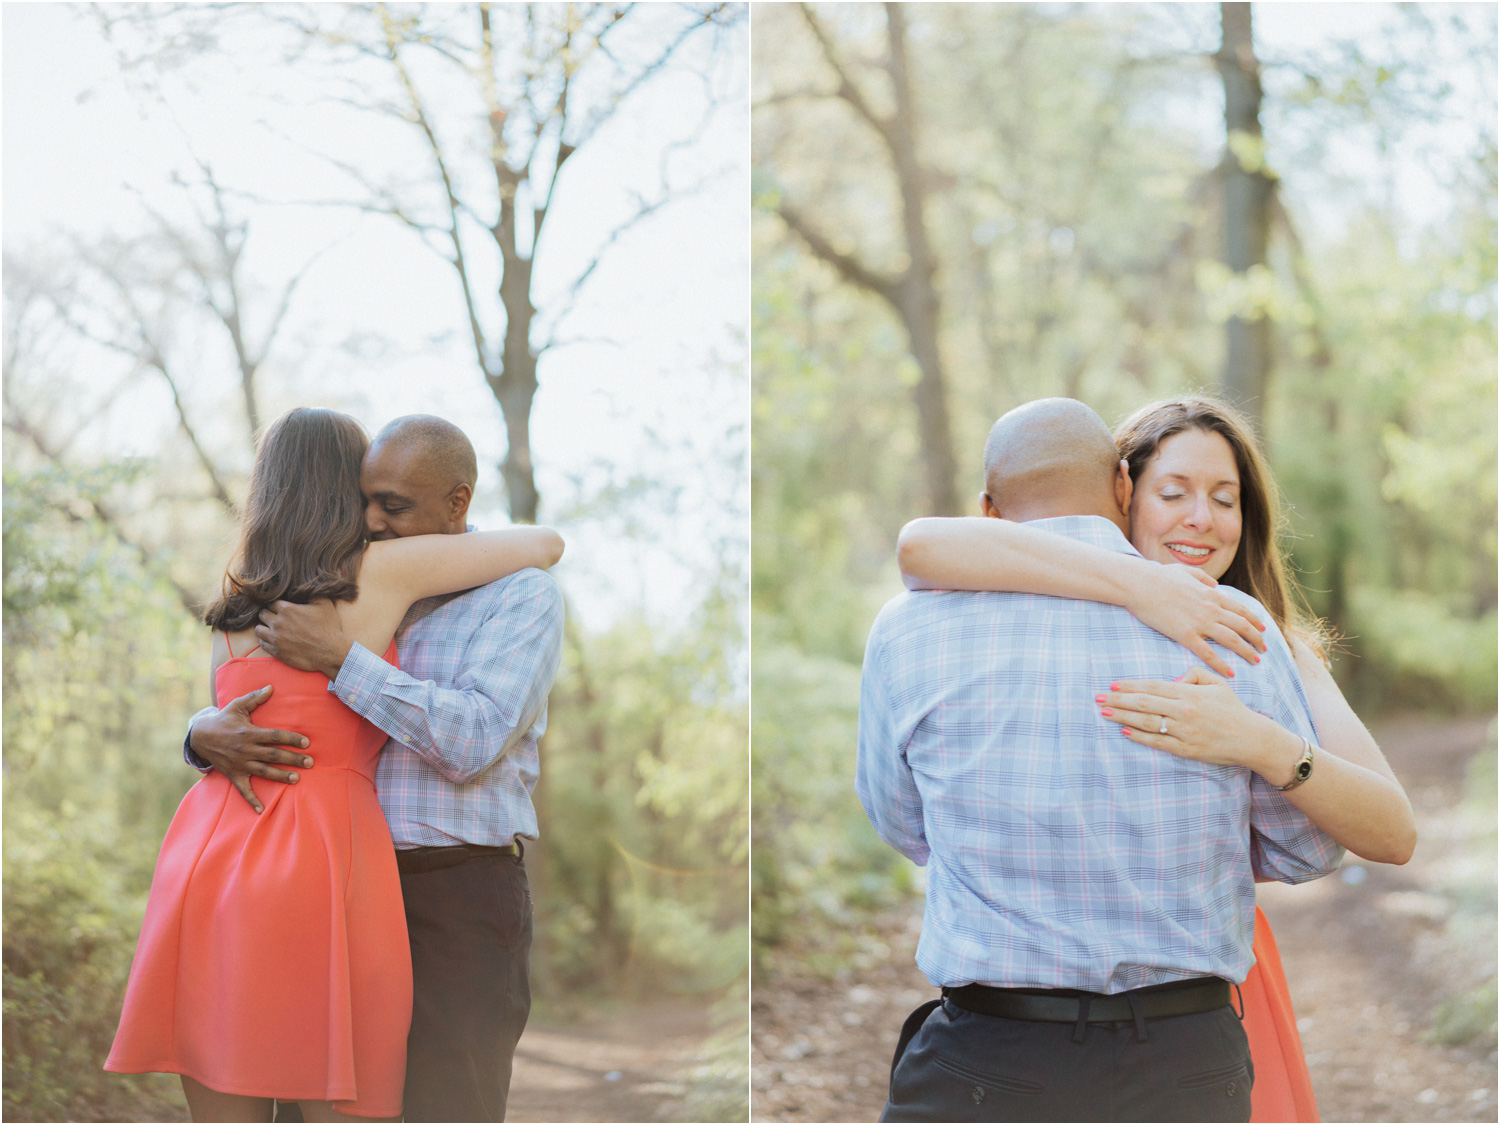 clove lakes park engagement session